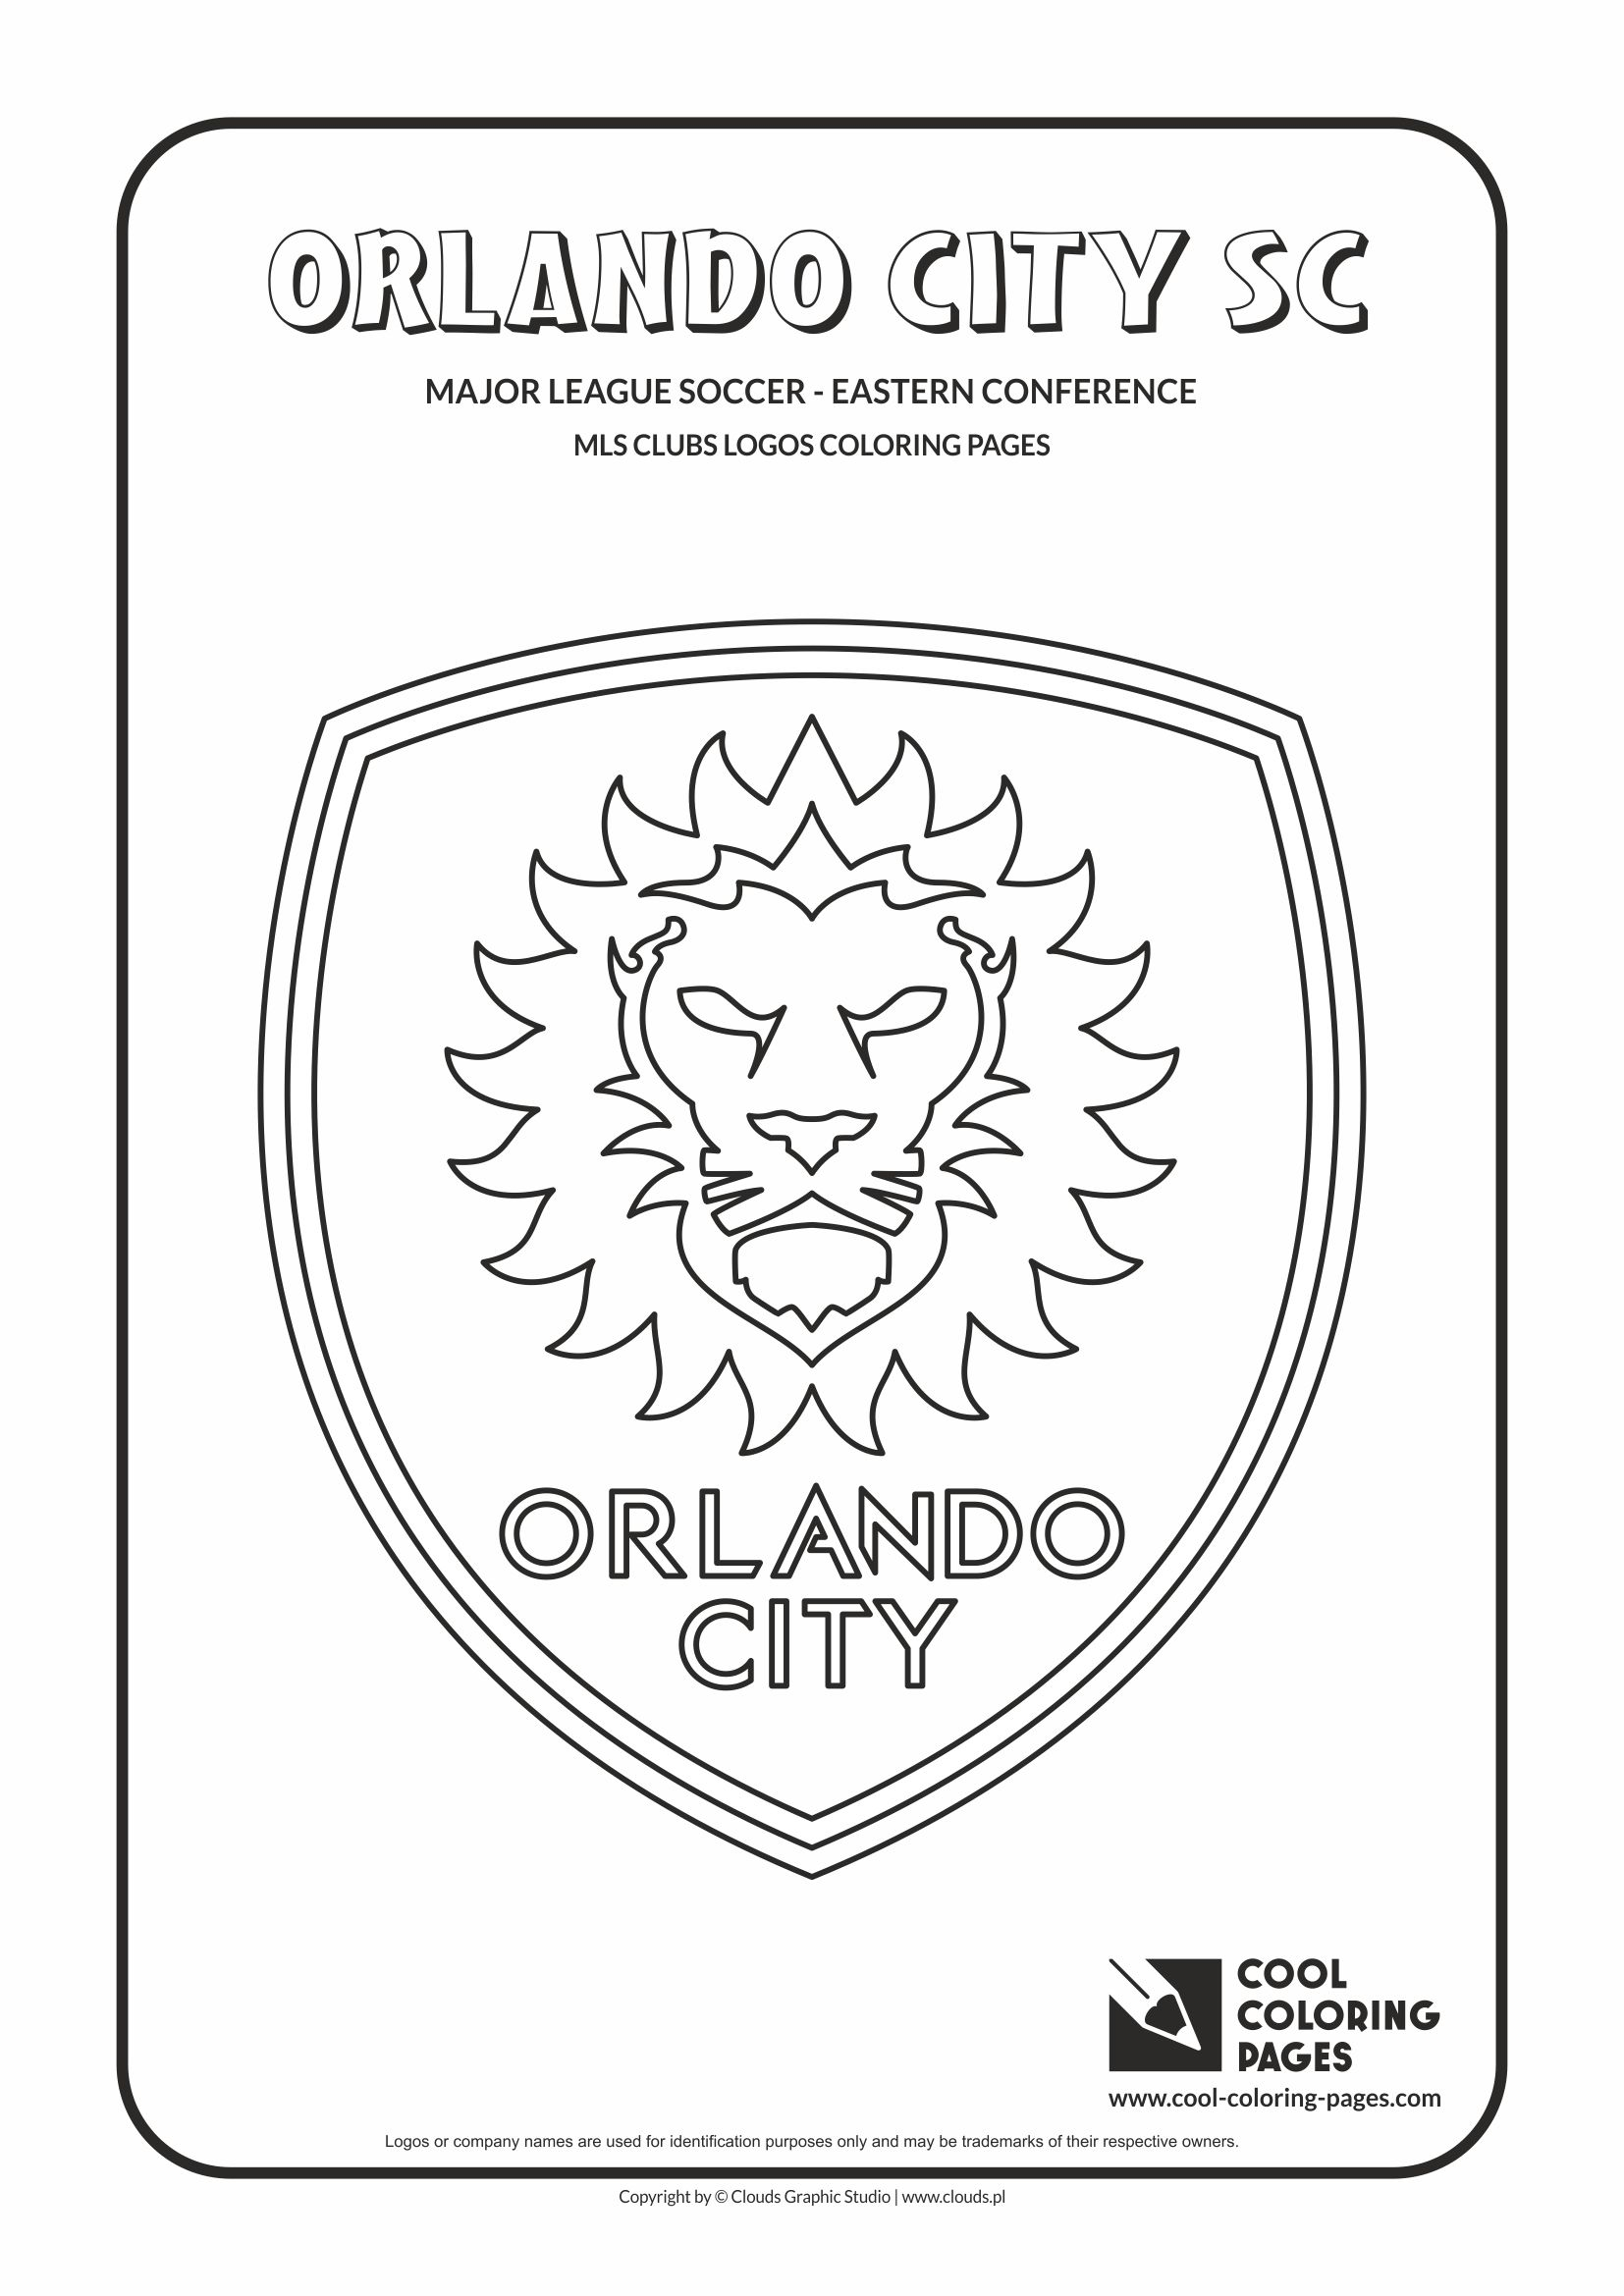 Cool Coloring Pages - Major League Soccer Logos - Eastern Conference / Orlando City SC logo / Coloring page with Orlando City SC logo